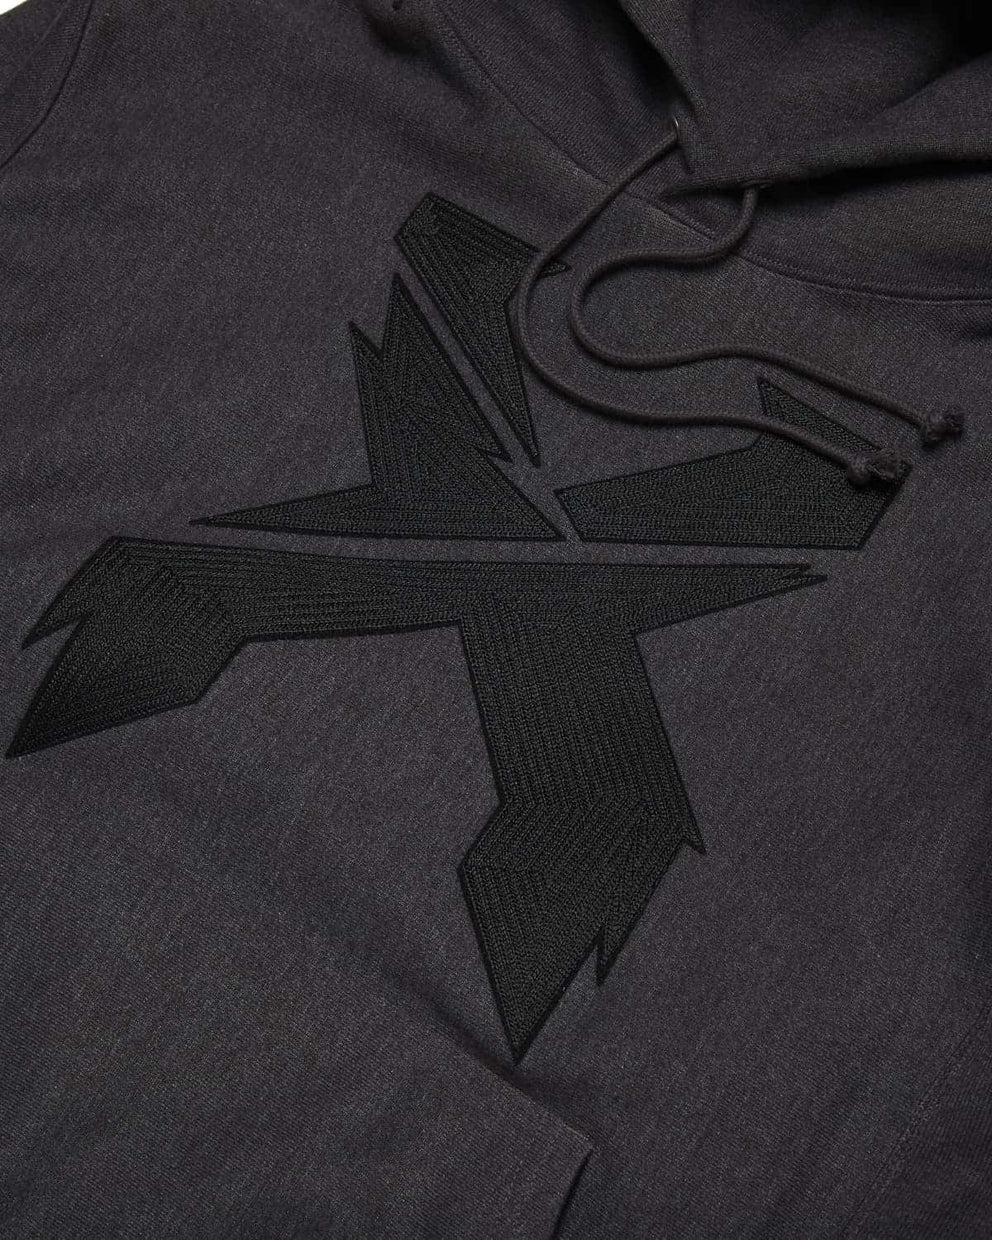 Excision x Champion 'Chainstitch X' Reverse Weave Hoodie